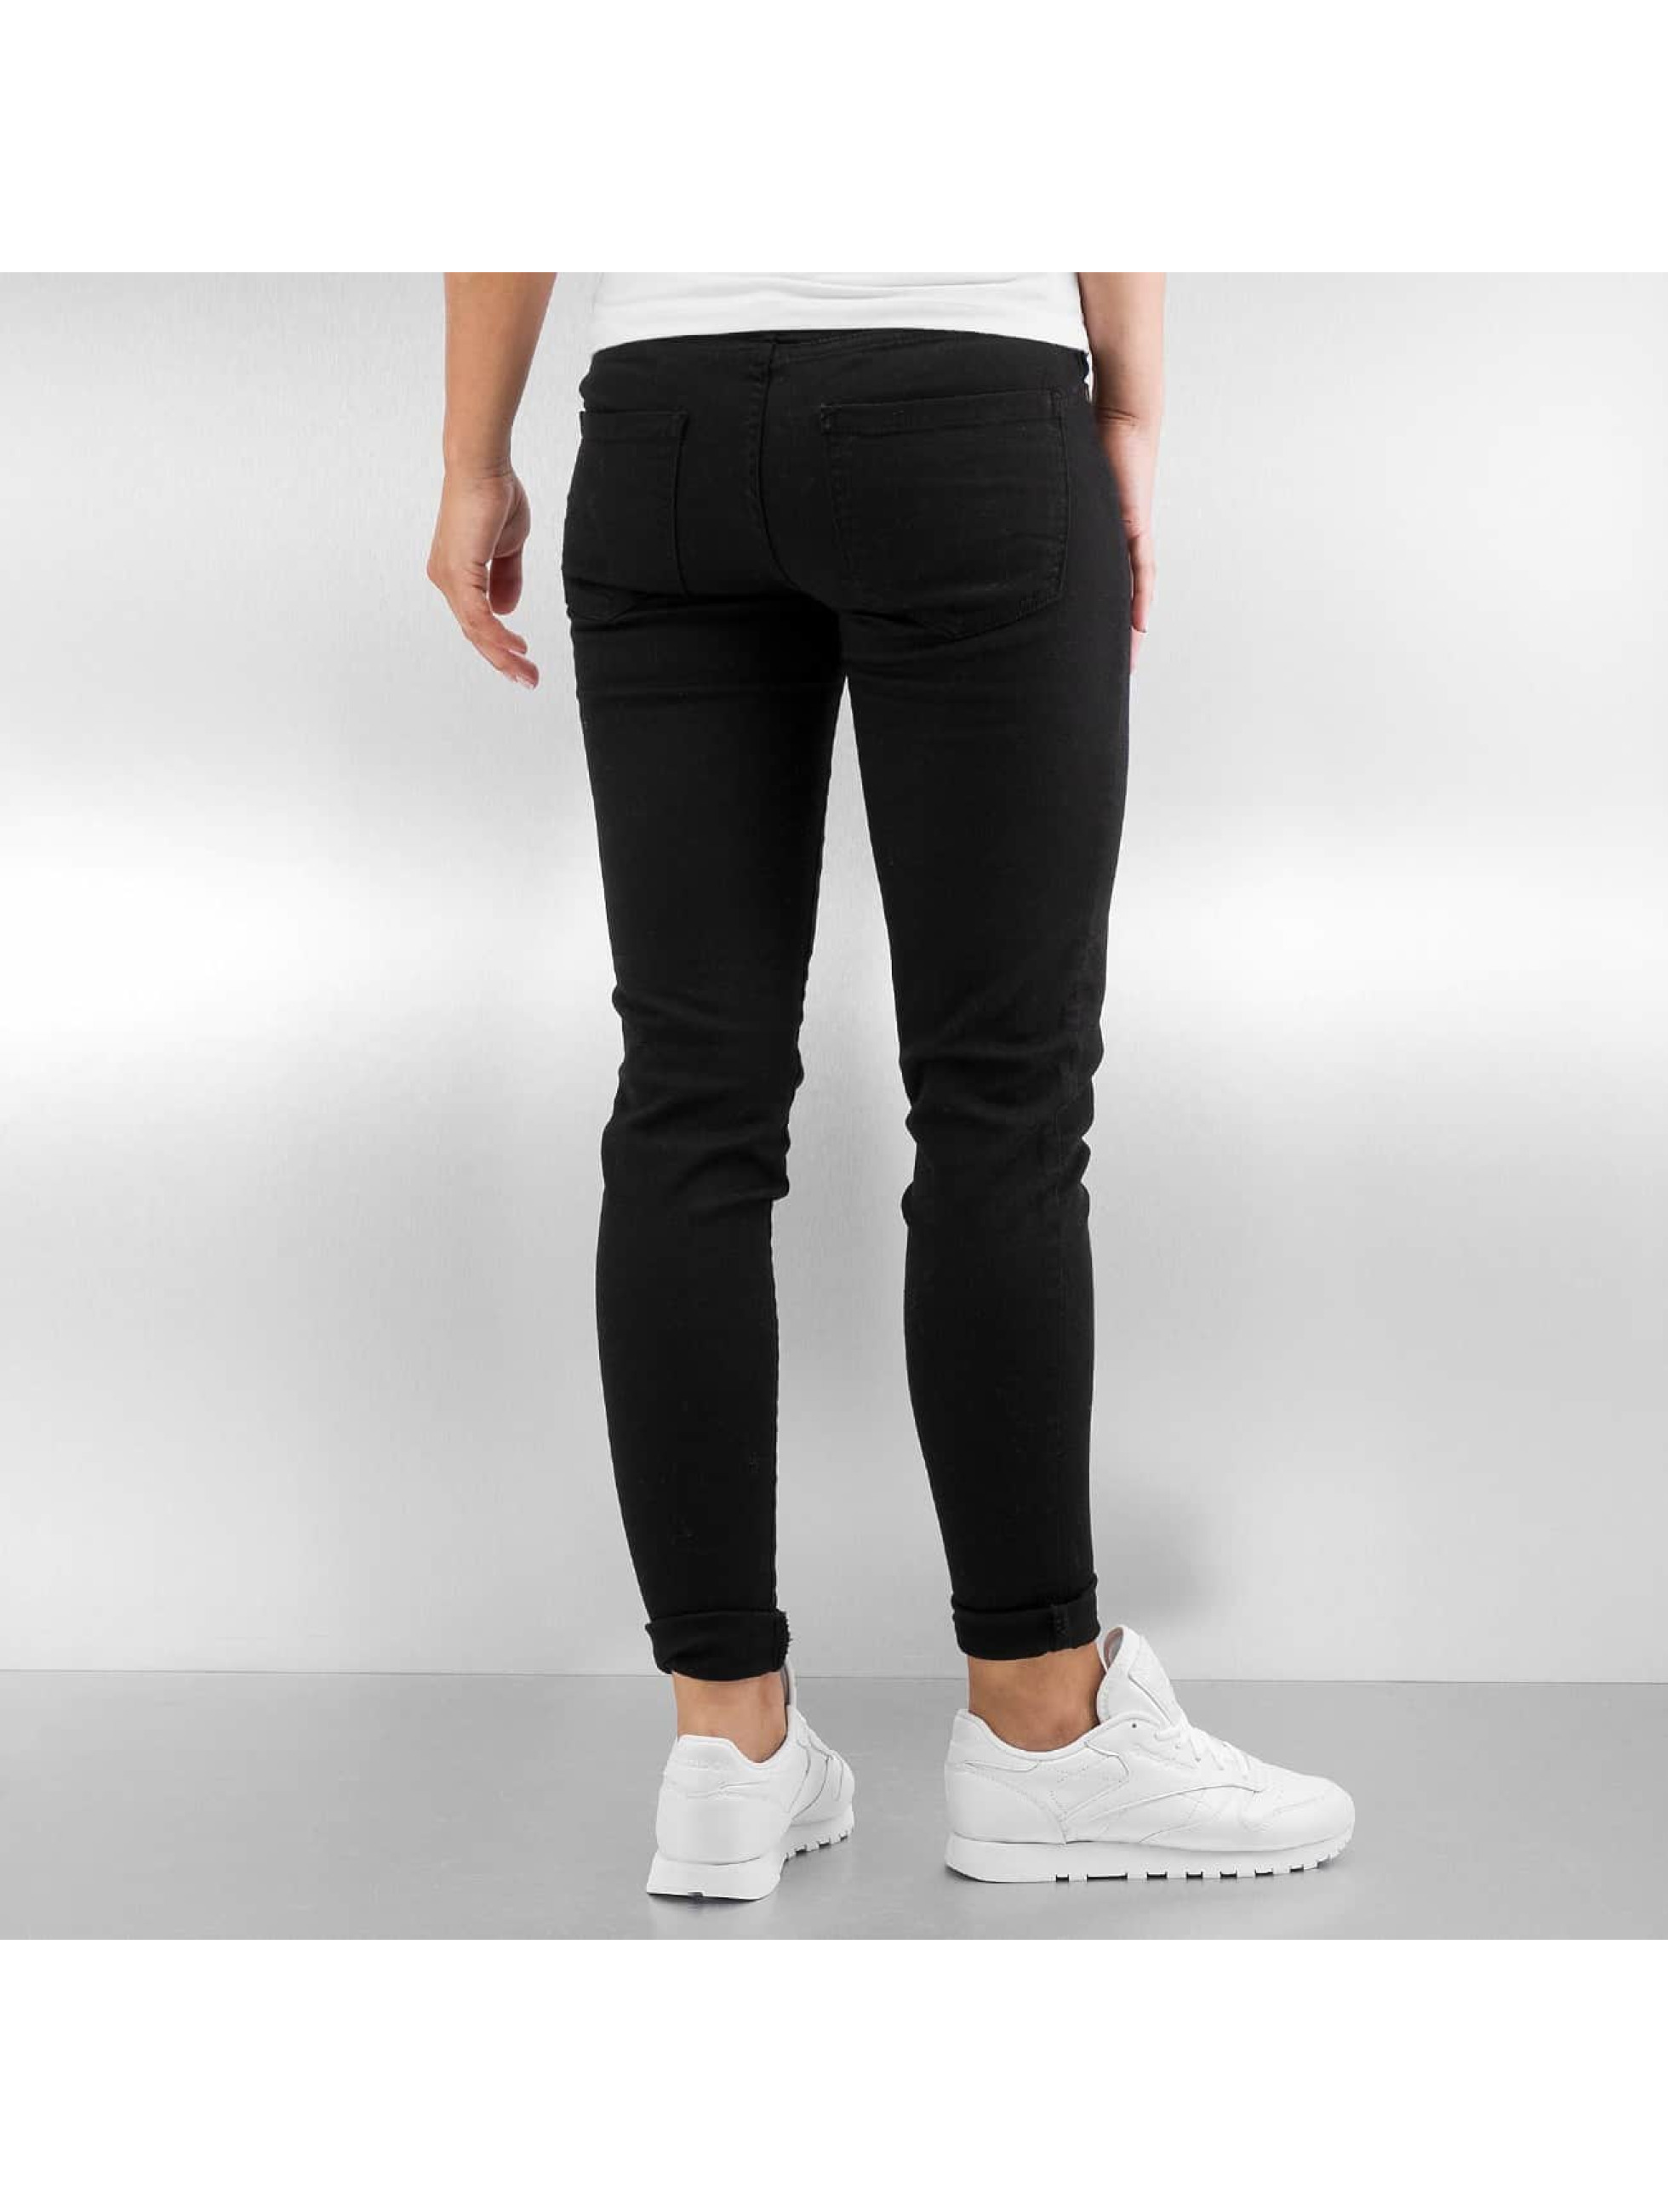 Urban Classics Skinny Jeans Ladies black